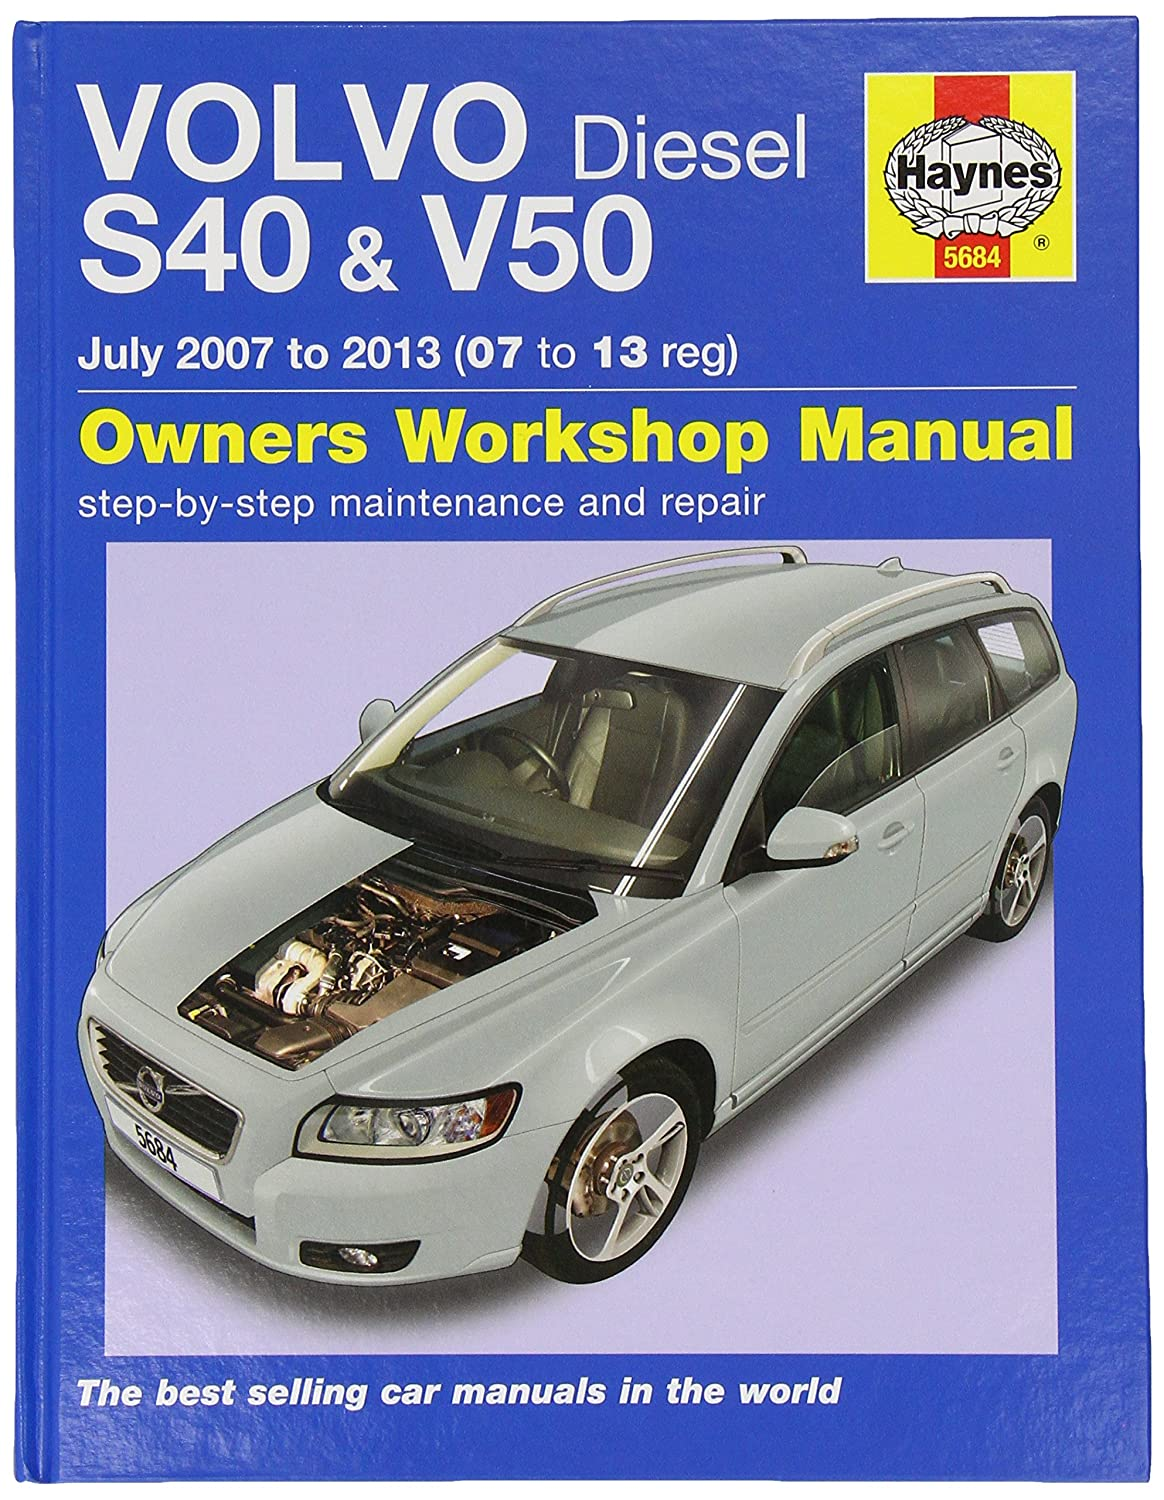 Volvo 950 owners manual array repair manual volvo s40 rh repair manual volvo s40 angelayu us fandeluxe Gallery